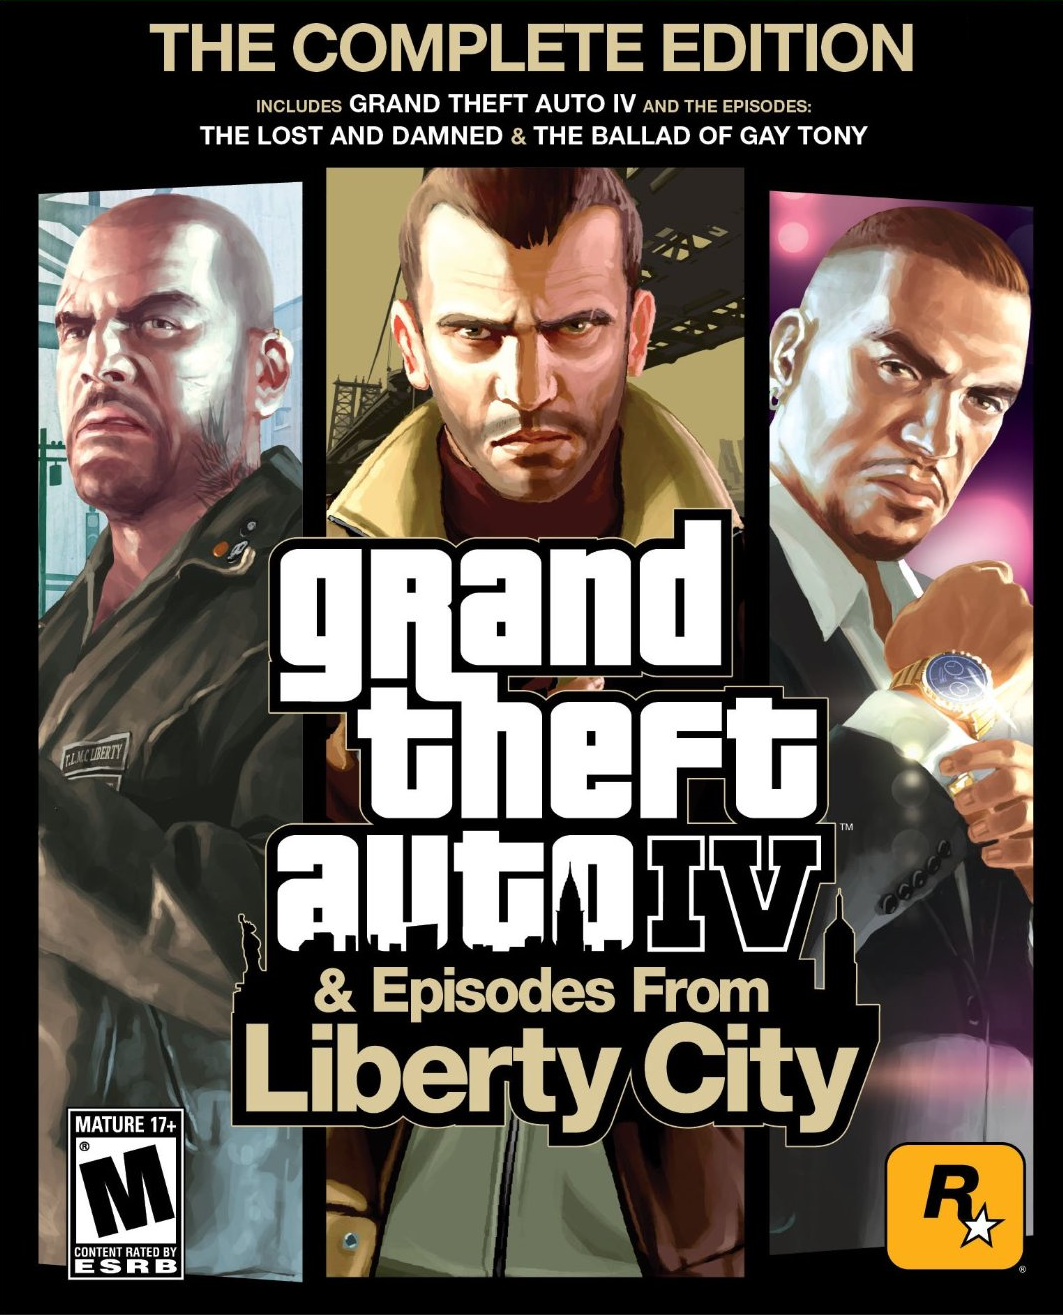 Grand theft auto iv episodes from liberty city usa jb ps3 gsxr